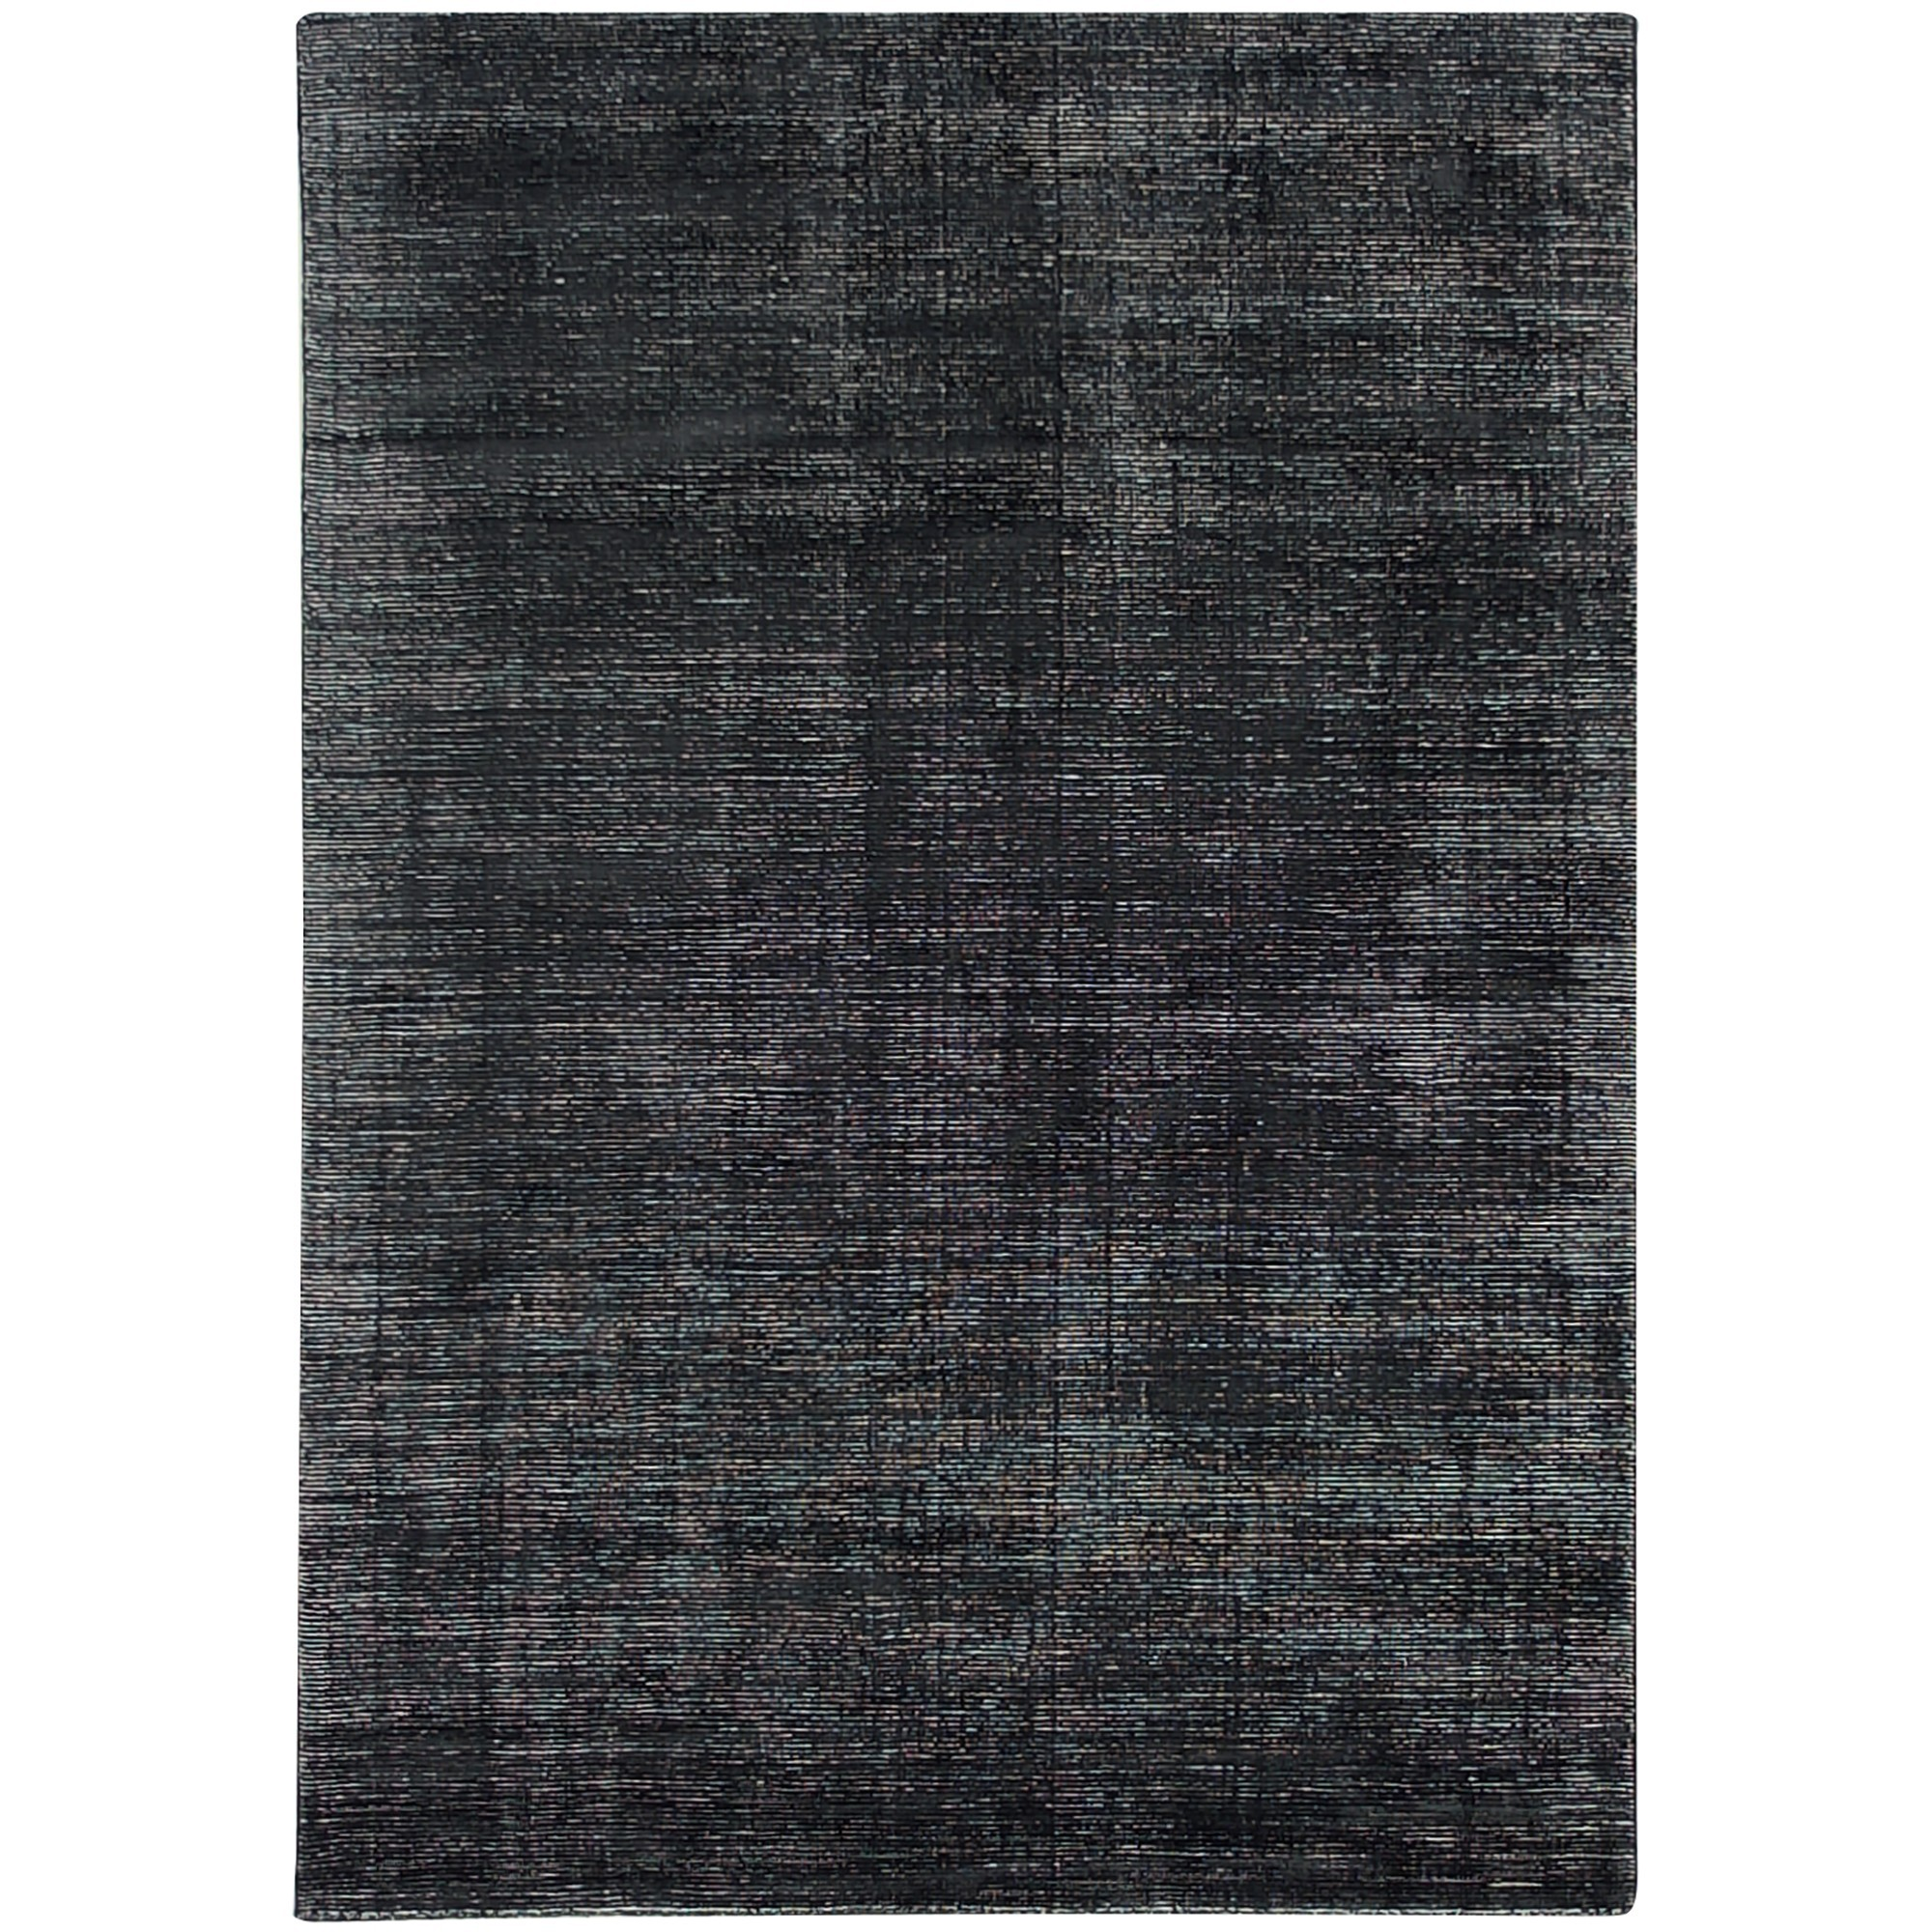 Elements Hand Knotted Wool Rug, 160x230cm, Charcoal